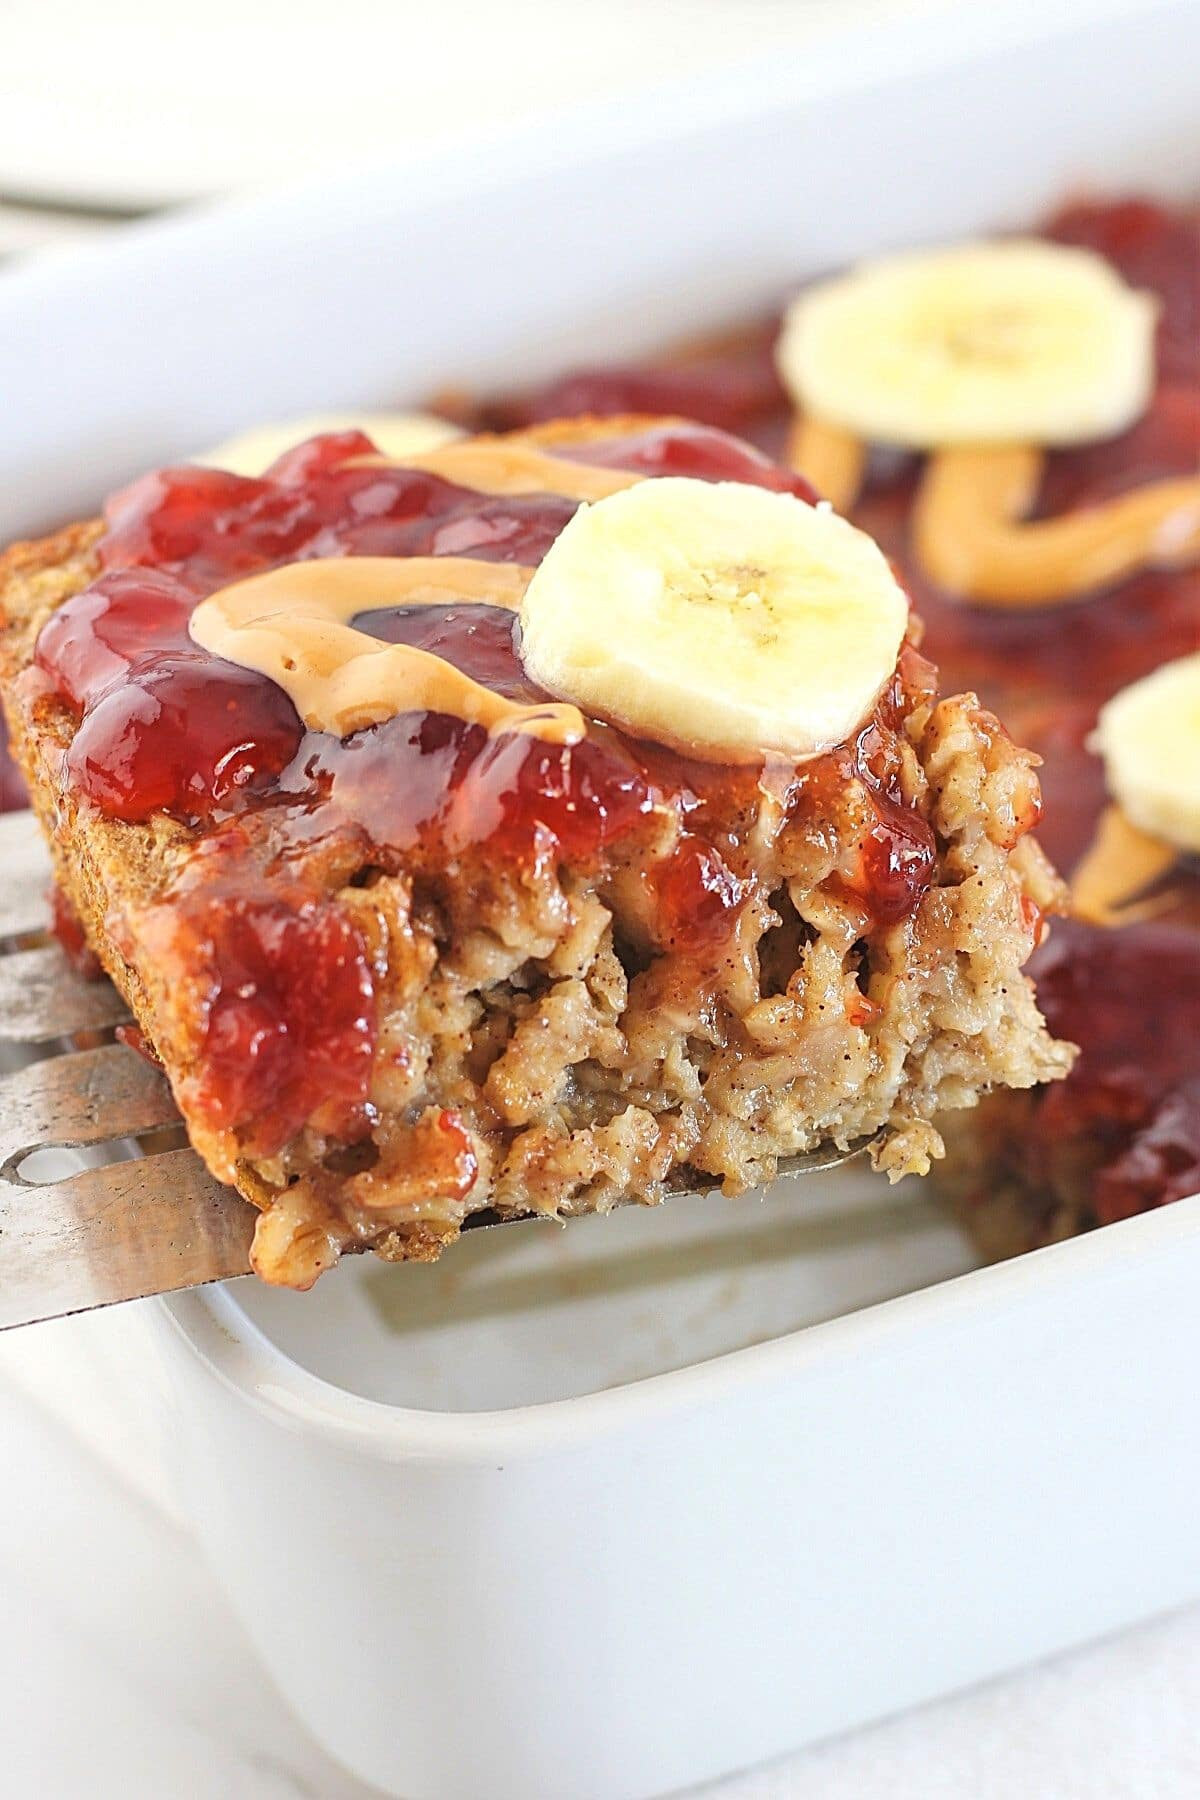 square of peanut butter, banana and jam baked oatmeal being lifted out of the baking dish